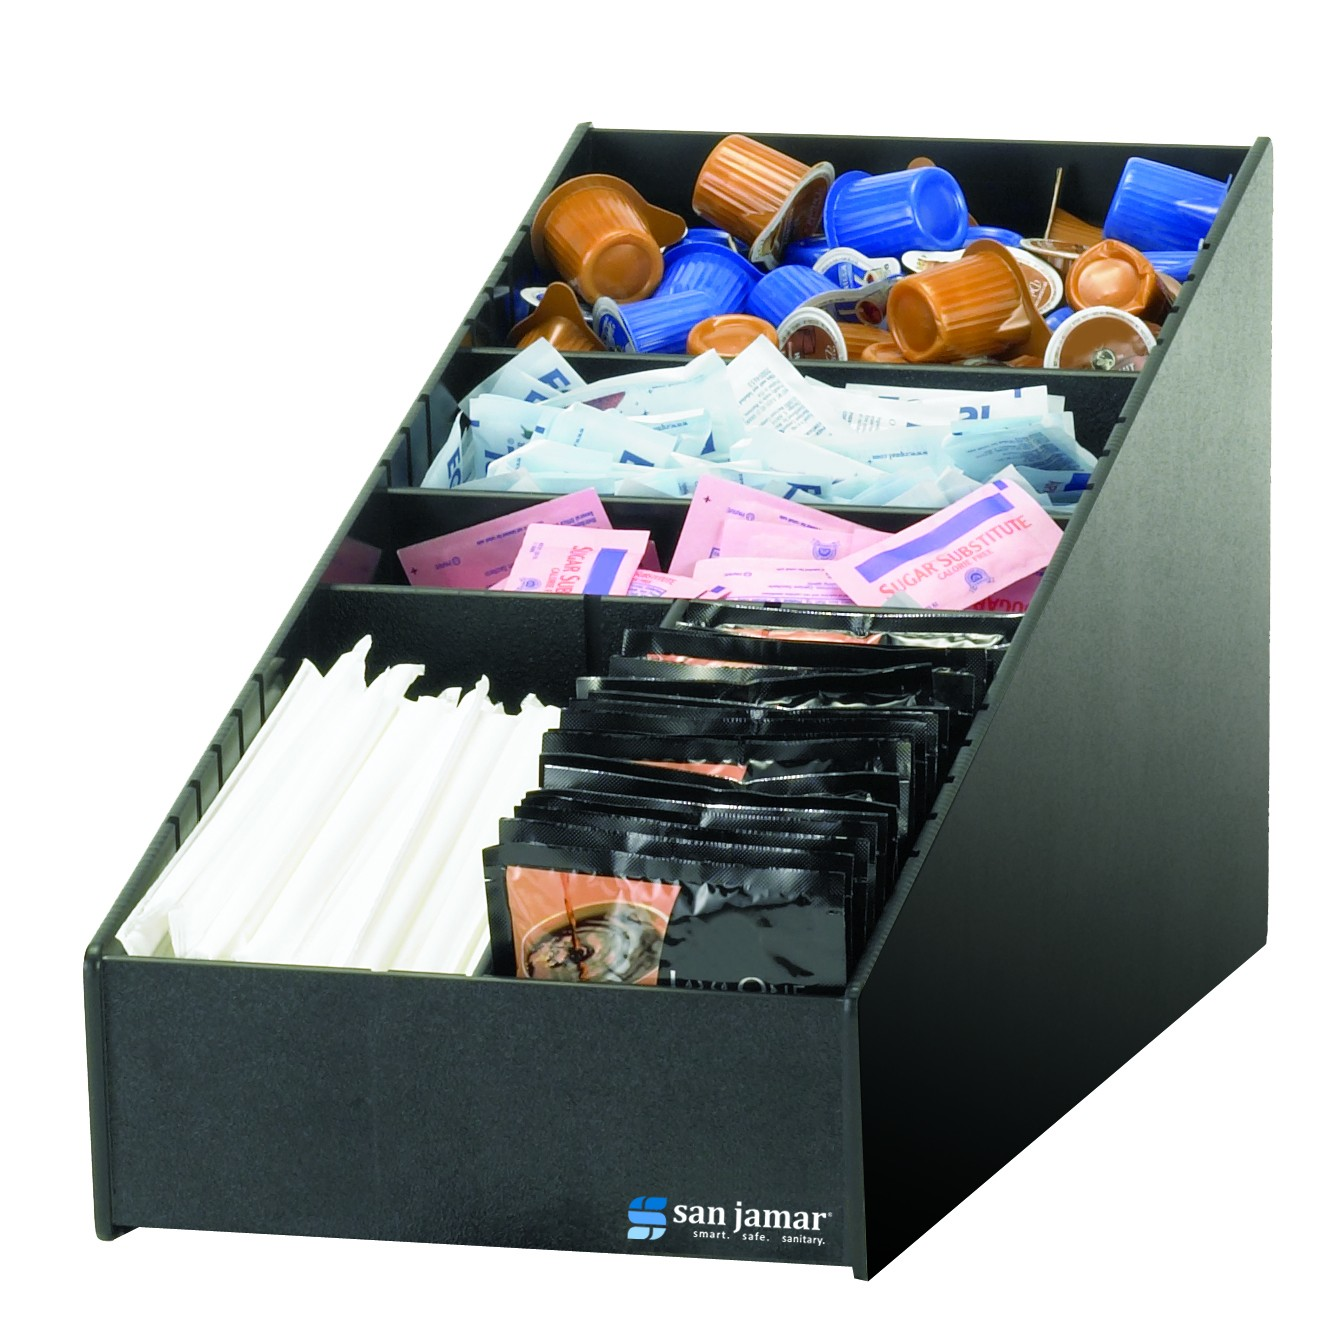 San Jamar L2900 Condiment And Straw Organizer